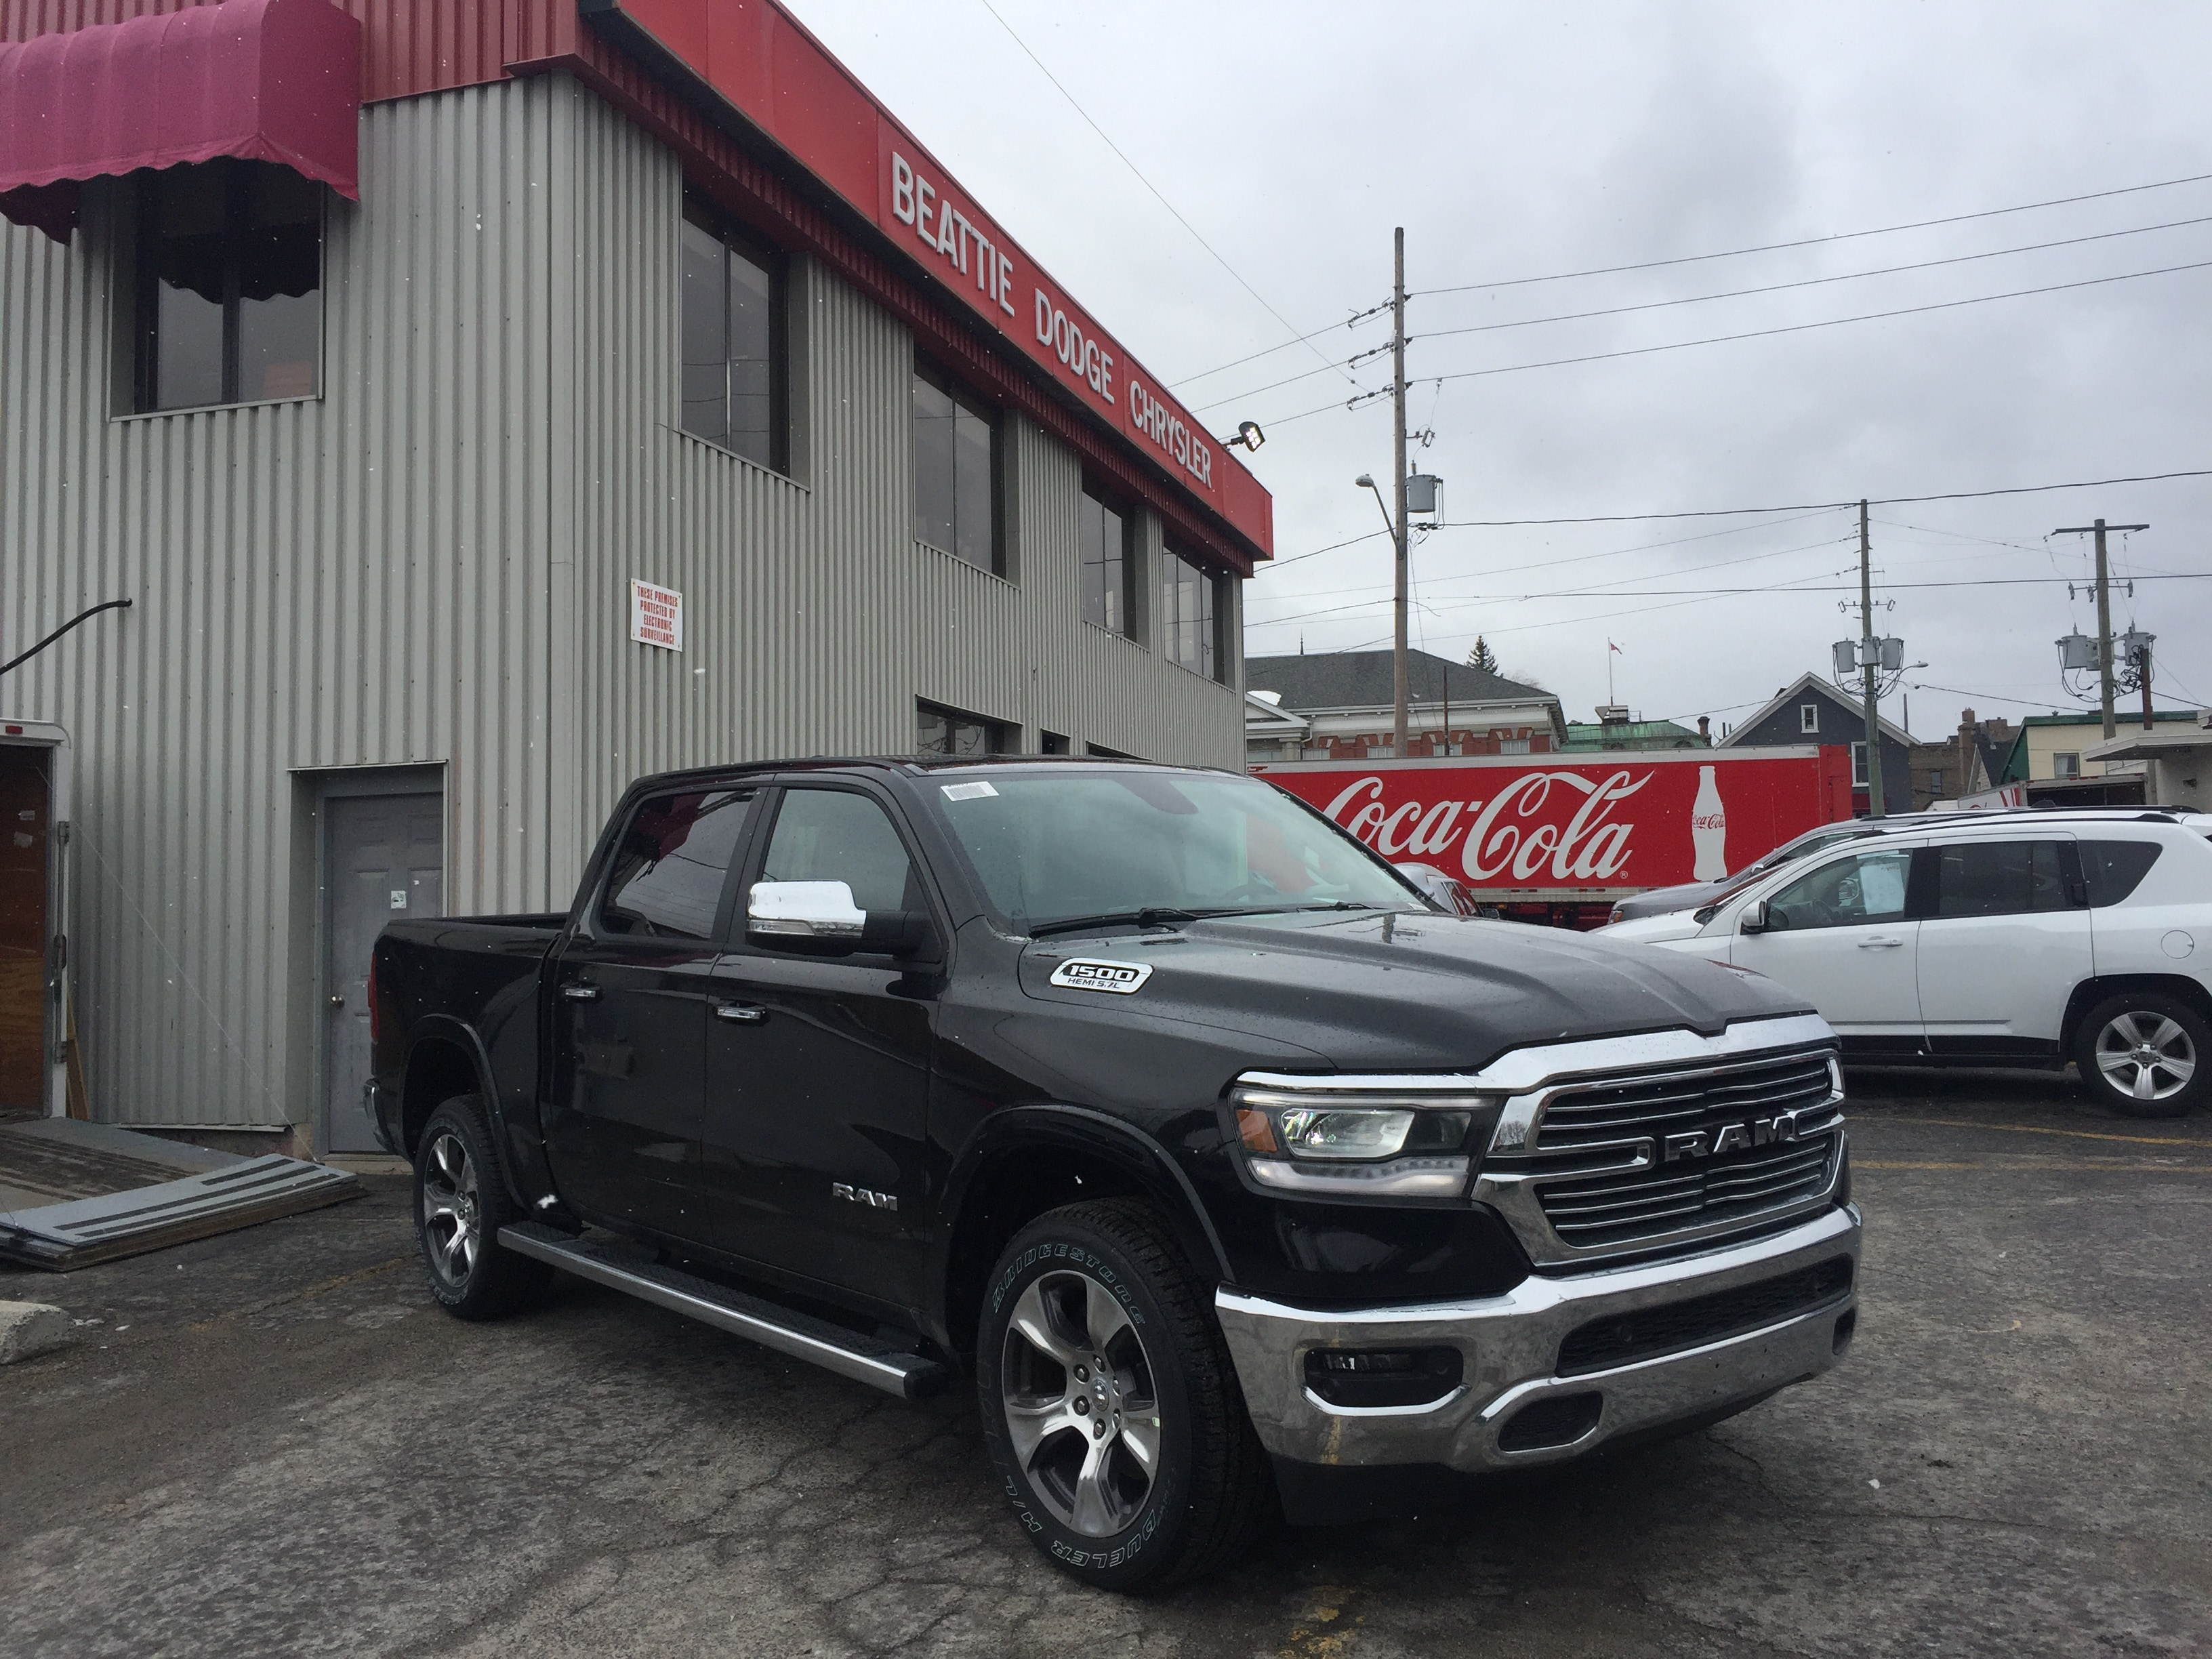 2019 Ram All-New 1500 Laramie TOW PACKAGE/ LEATHER/ FULLY LOADED Truck Crew Cab